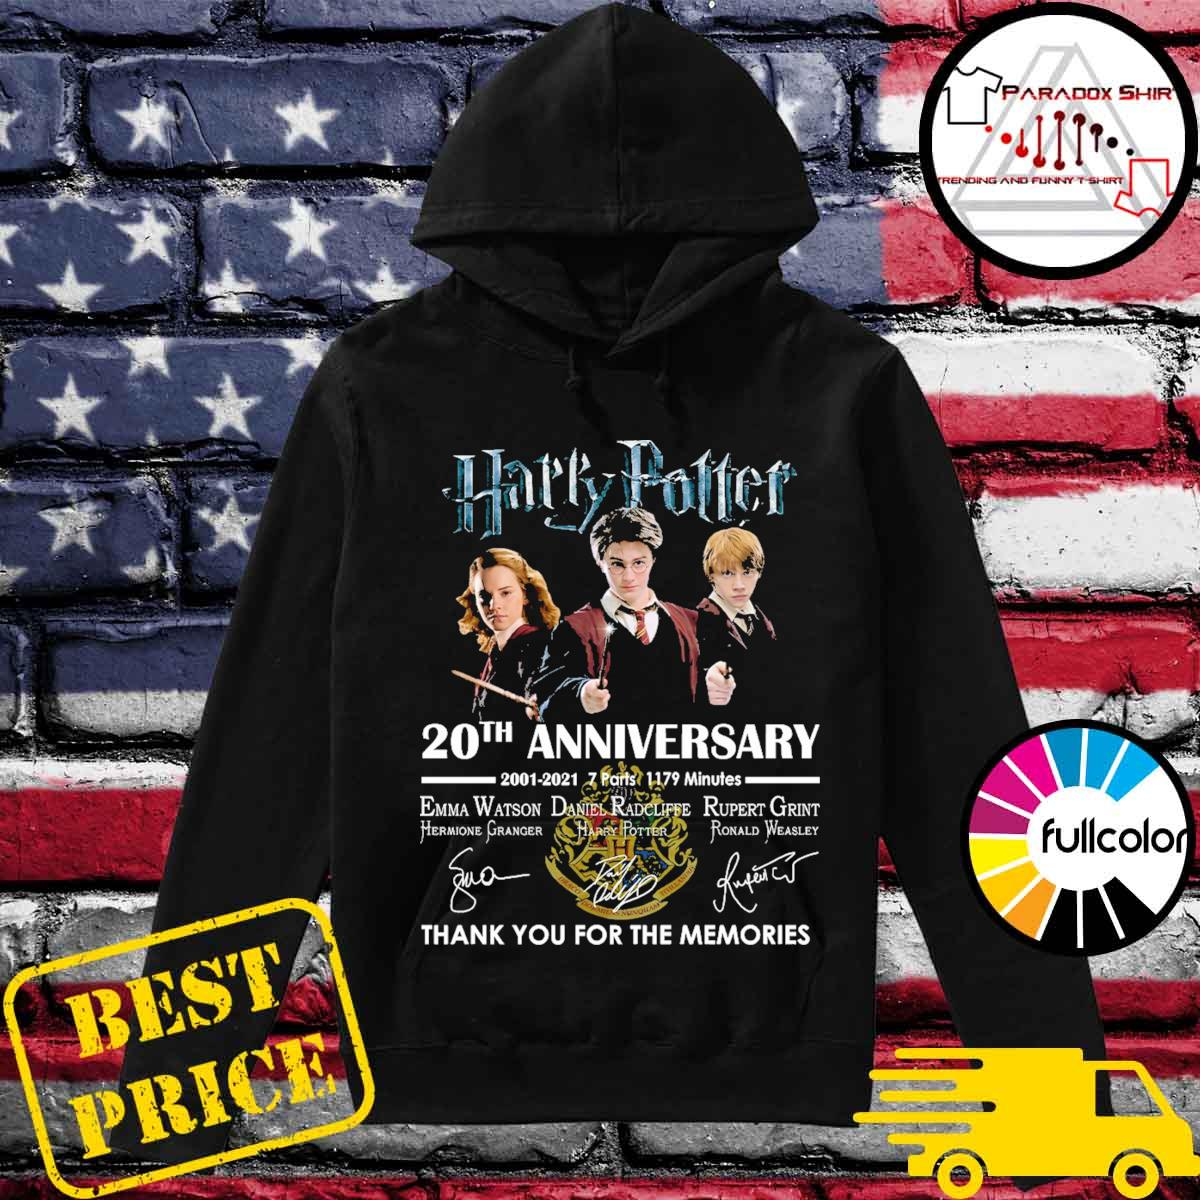 Harry Potter 20th Anniversary 2001 2021 7 parts 1179 minutes signatures thank you for the memories s Hoodie